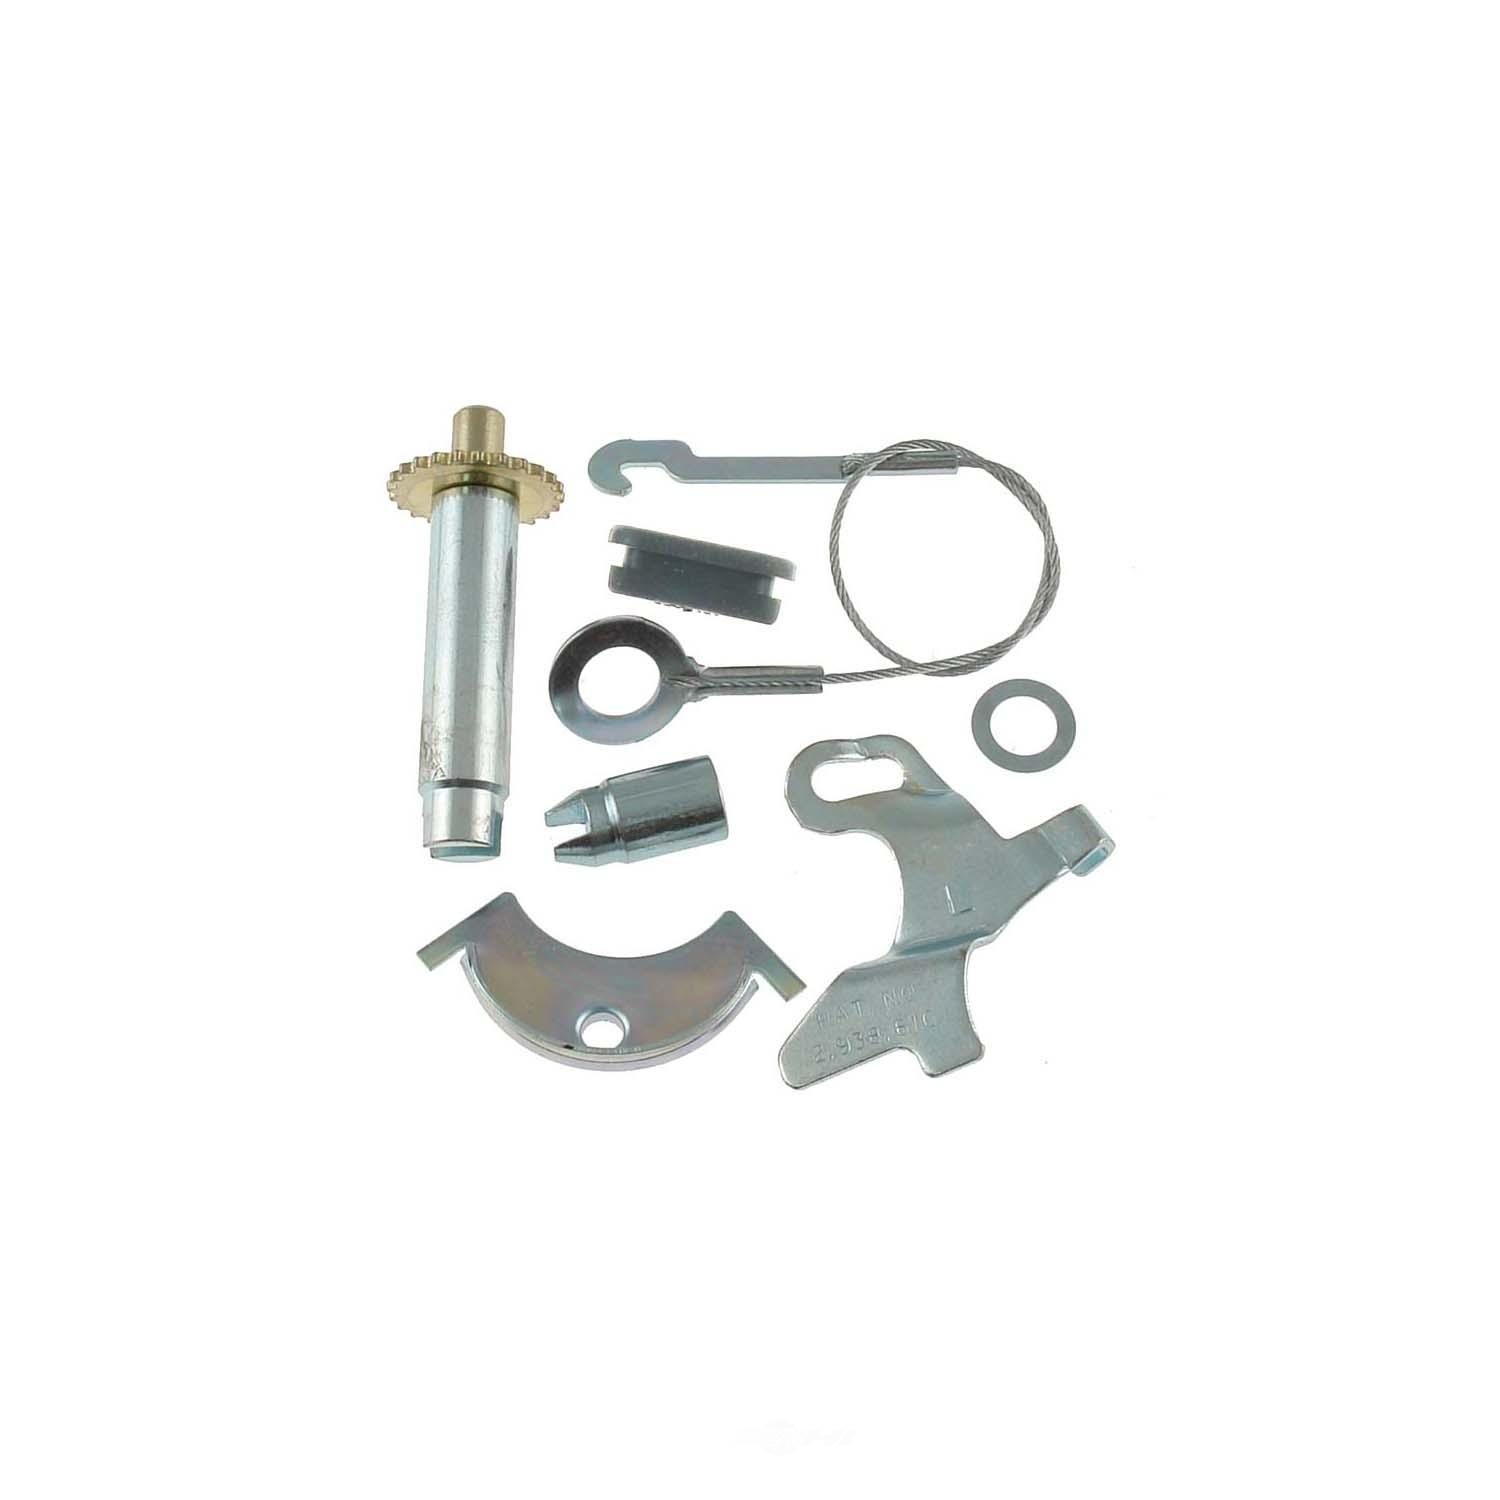 CARLSON QUALITY BRAKE PARTS - Drum Brake Self Adjuster Repair Kit (Rear Left) - CRL H2544